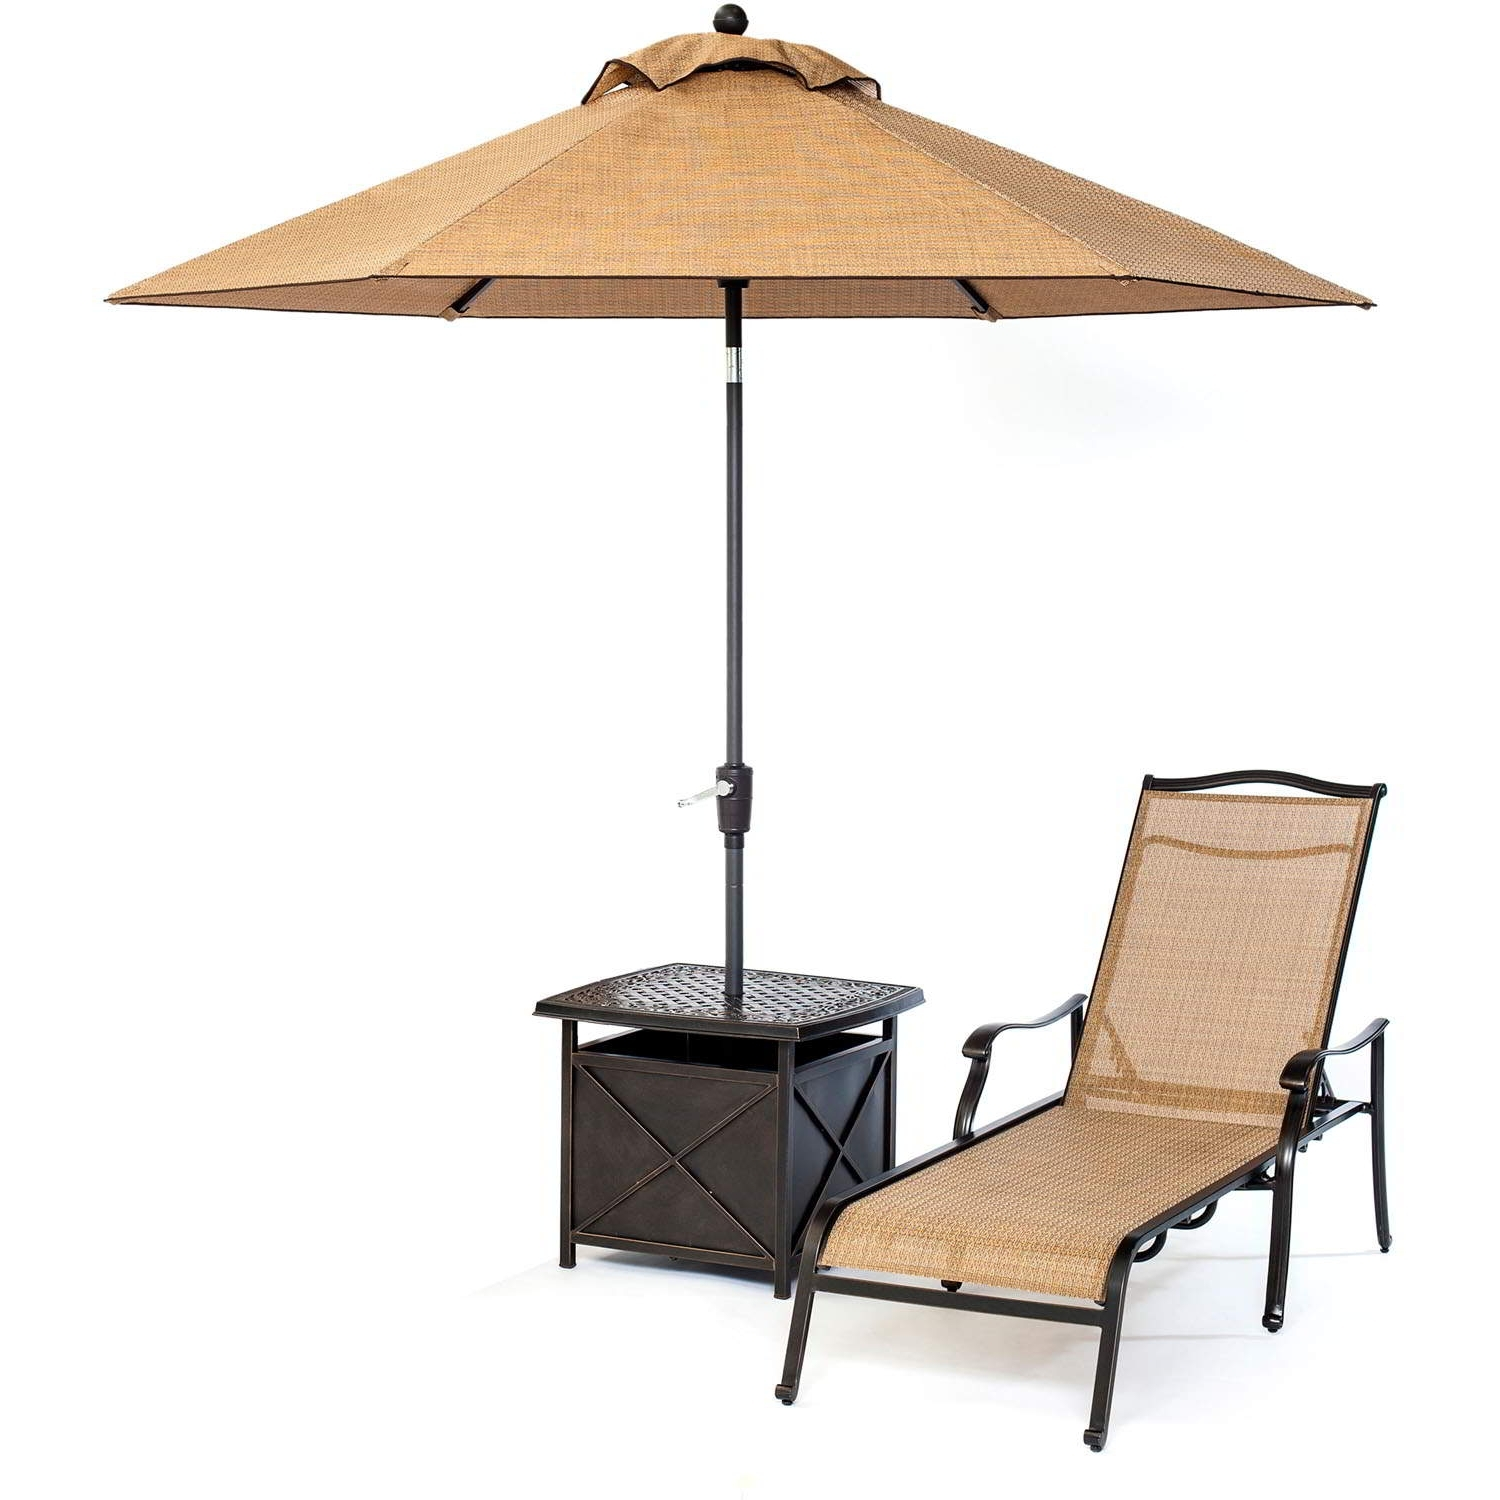 the best patio umbrella side tables with recent chaise lounge chair table and zero gravity bombay outdoors pineapple accent furniture world outdoor setting matching coffee lamp